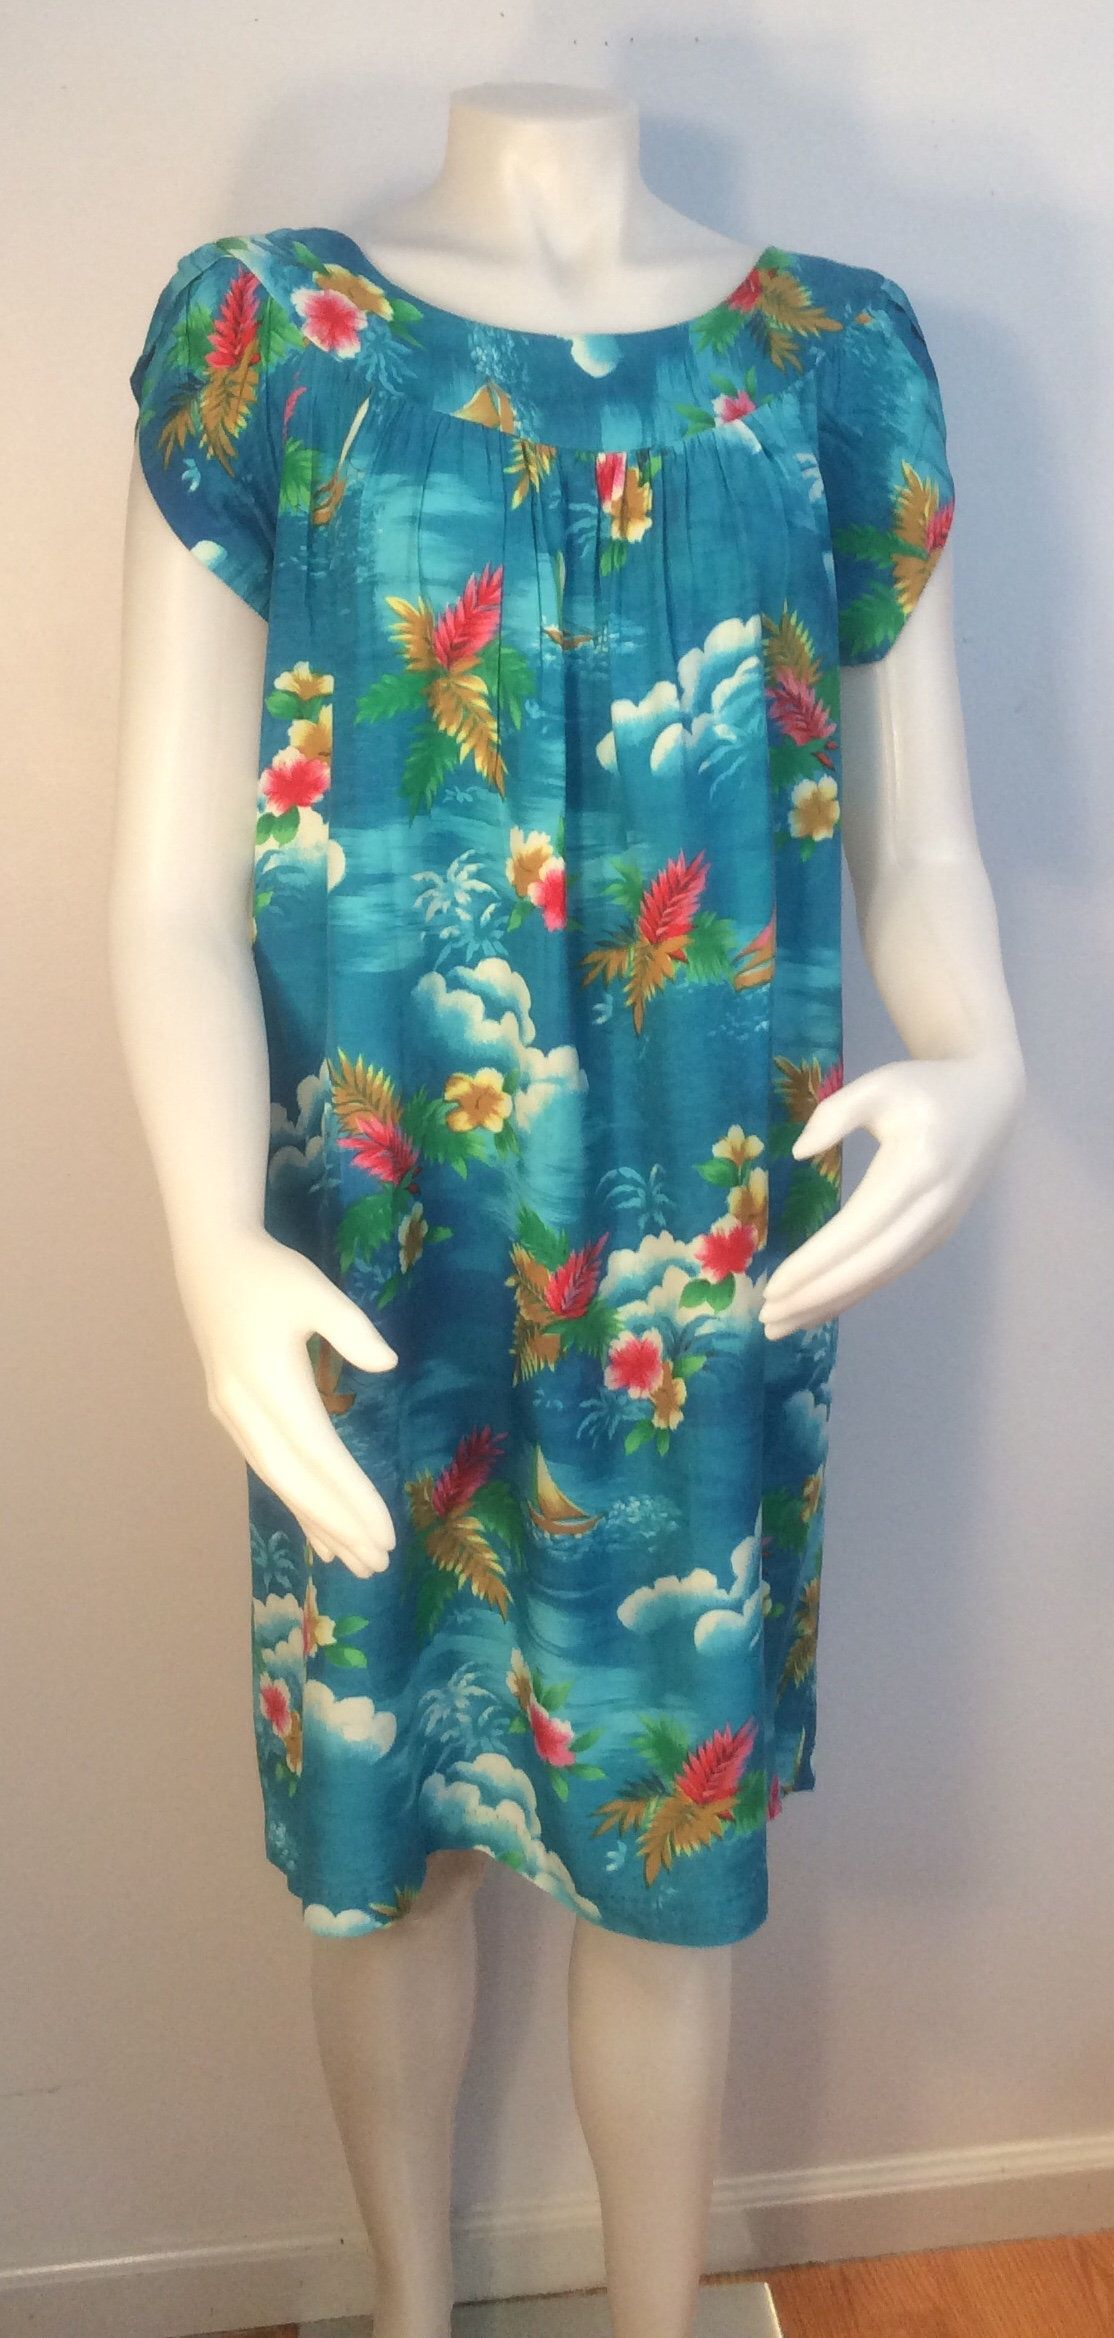 Hawaiian dress vintage turquoise flowers sail boats ocean clouds ...